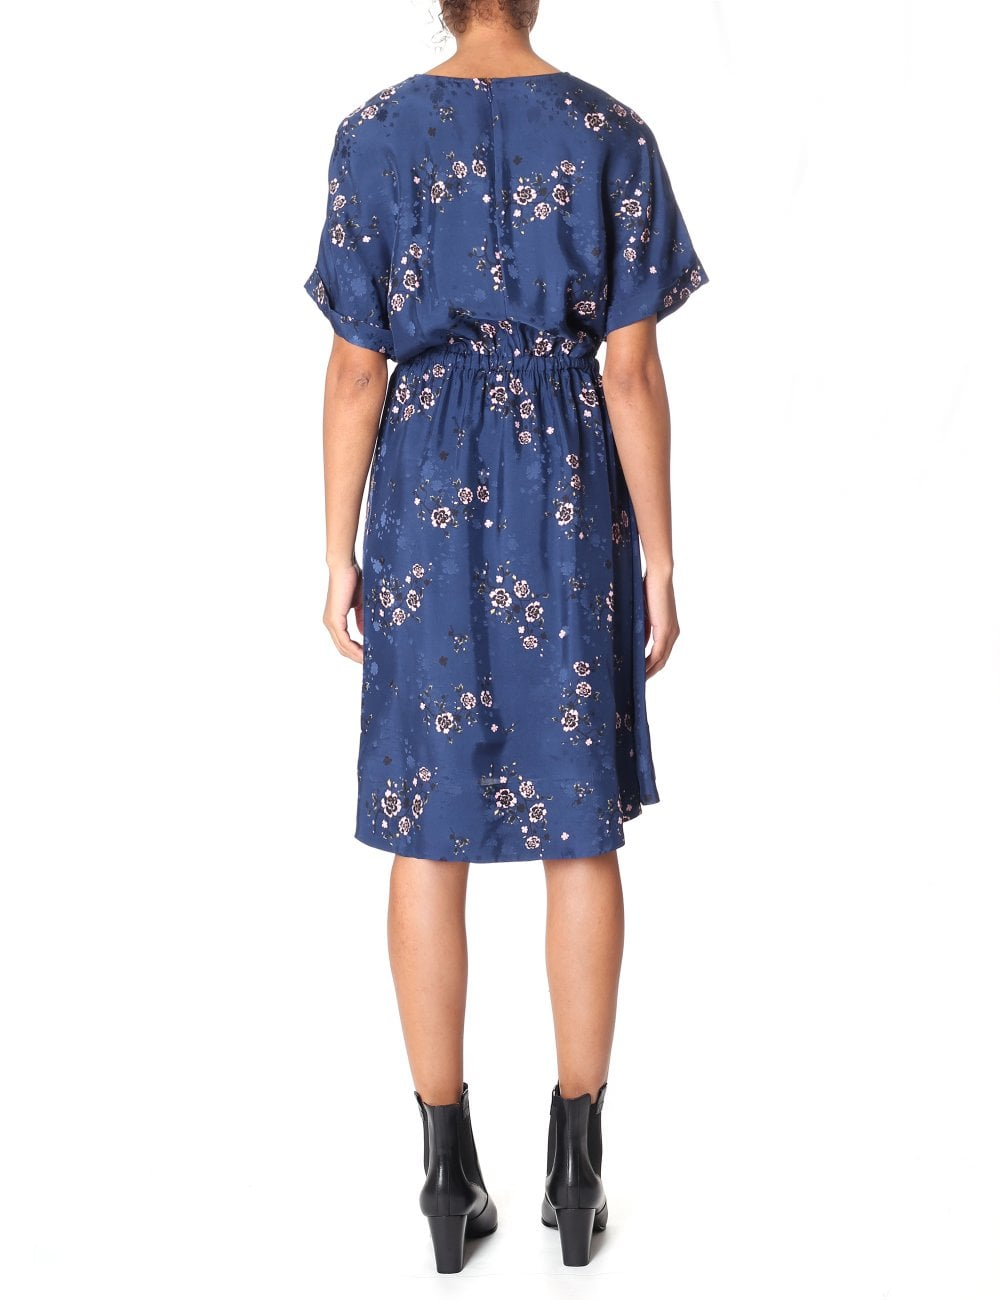 d723f7232e9 Kenzo Women s Cheongsam Flower Flounced Dress